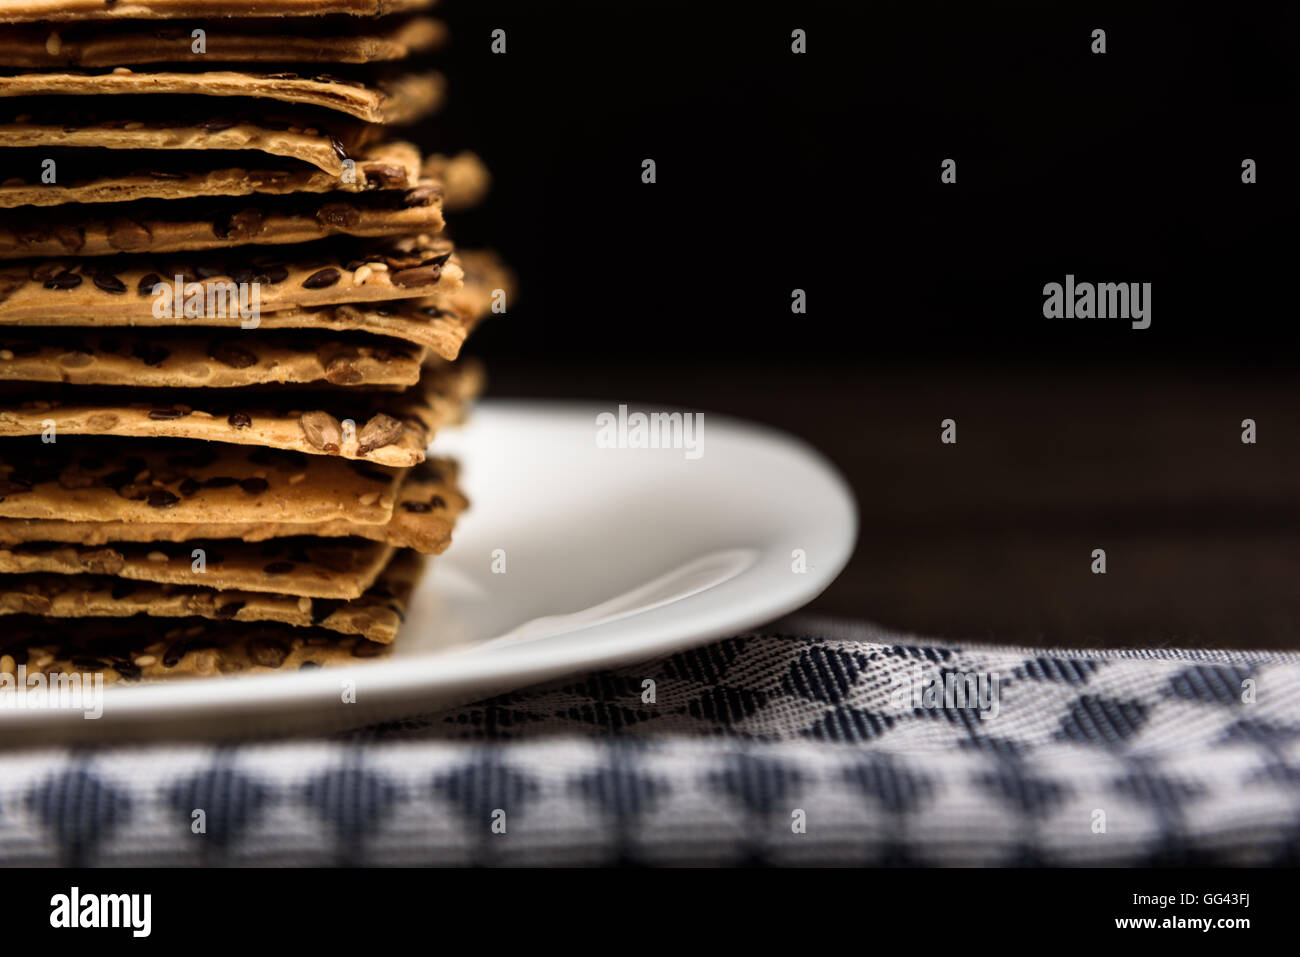 cookies with sunflower seeds and sesame seeds on a white plate with checkered napkin - Stock Image